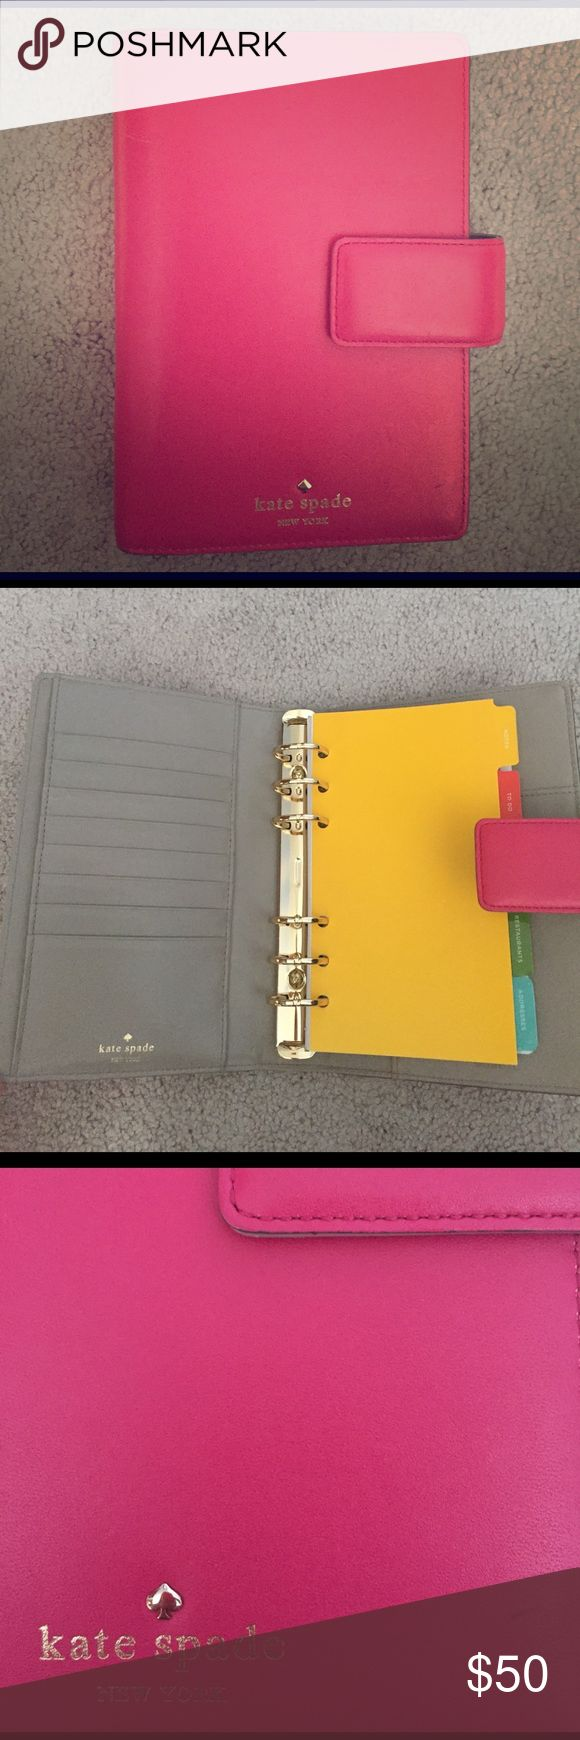 """Tudor City Large Debra Agenda Leather Designer logo at front Leather interior lining with a slip pocket, a slide pocket, eight card slots, a pen holder, comes with these inserts: Notes, To Do, Birthdays, Restaurants, and Addresses *does not include 2017 calendar insert* Side snap tab closure Measurements: Body length 5¼"""", height 7½"""", width 2"""" kate spade Other"""